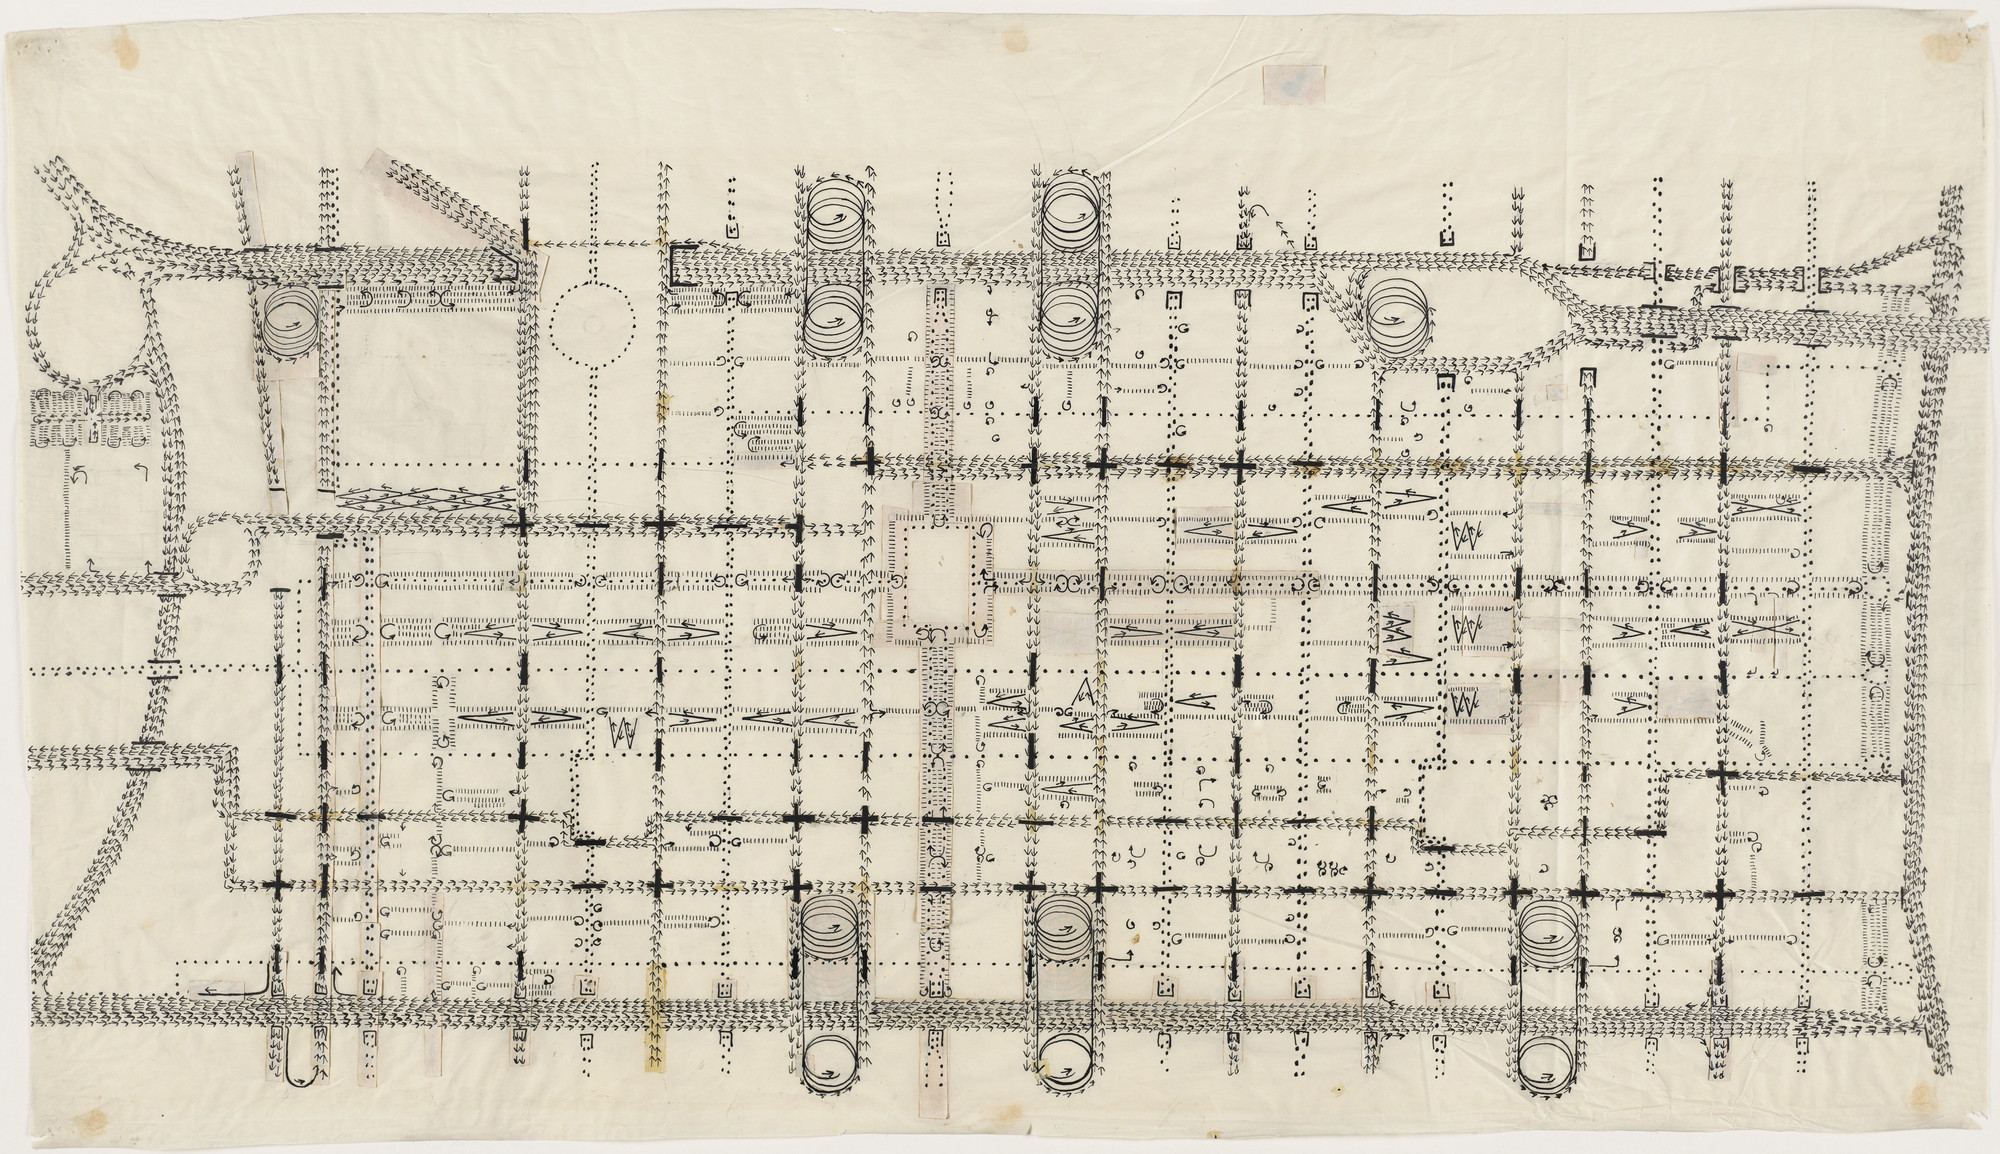 Louis I. Kahn. Traffic Study project , Philadelphia, PA (Plan of proposed traffic-movement pattern). 1952